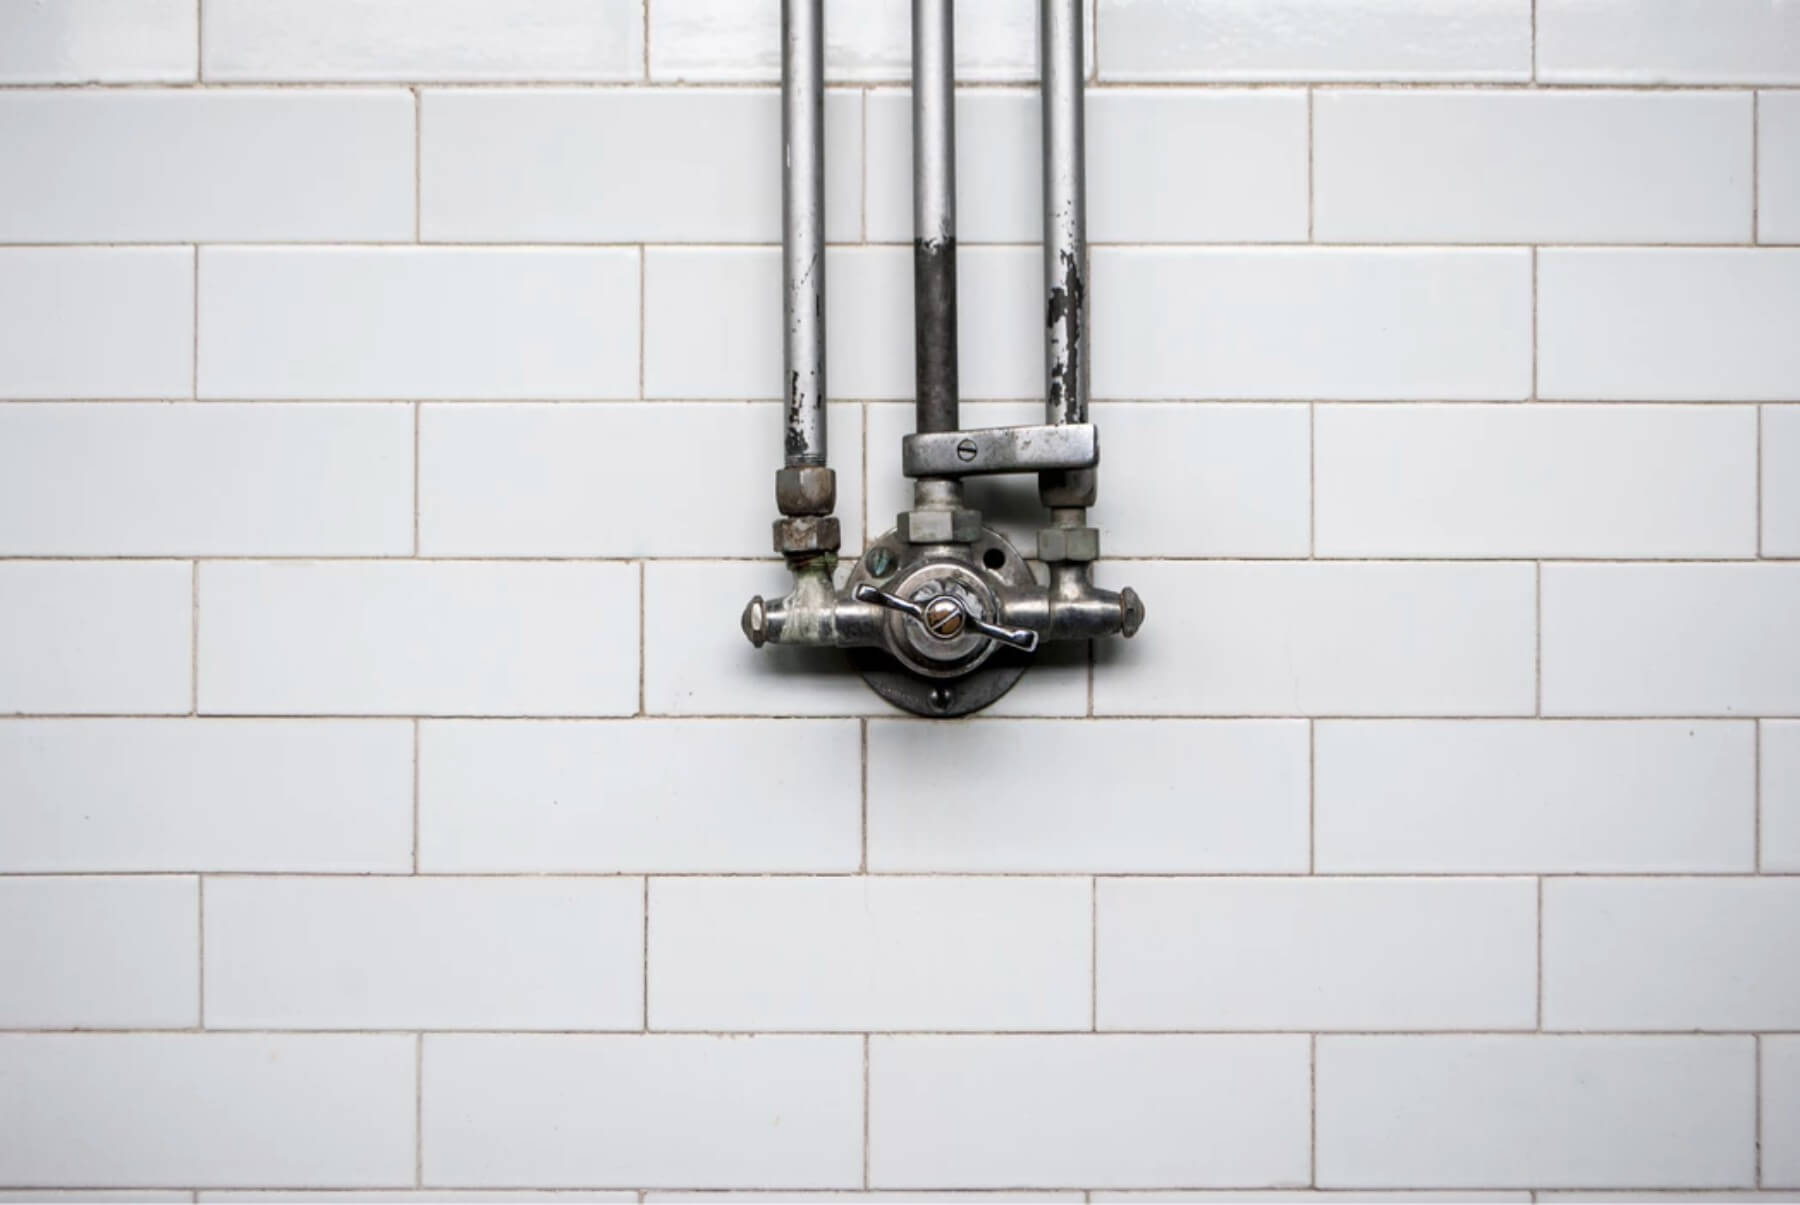 Dirty Grout? Here's How You Can Clean It!